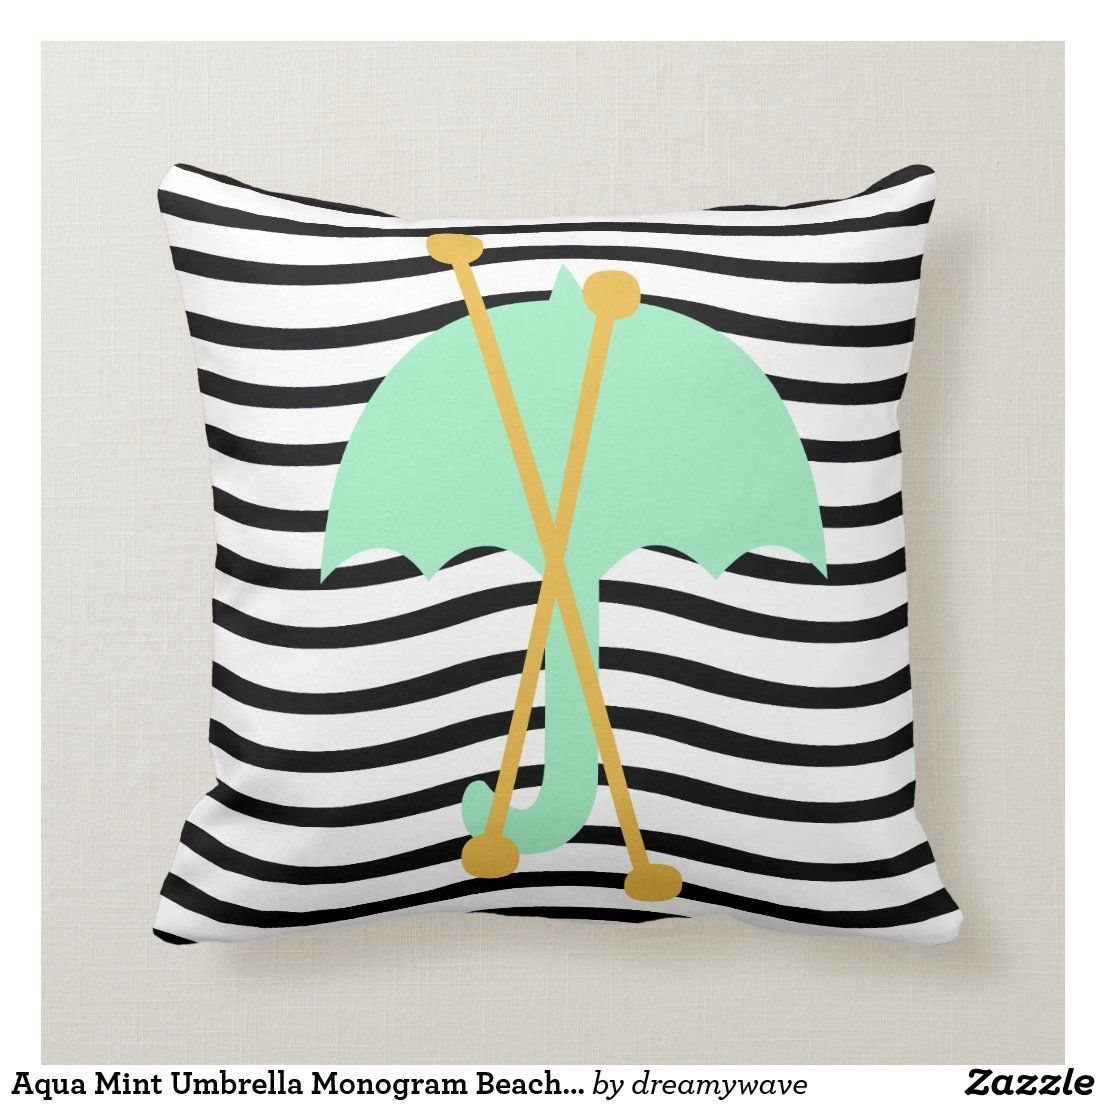 Aqua Mint Umbrella Monogram Beach Vibes Throw Pillow Throw Pillows Beach Monogram Cool Umbrellas